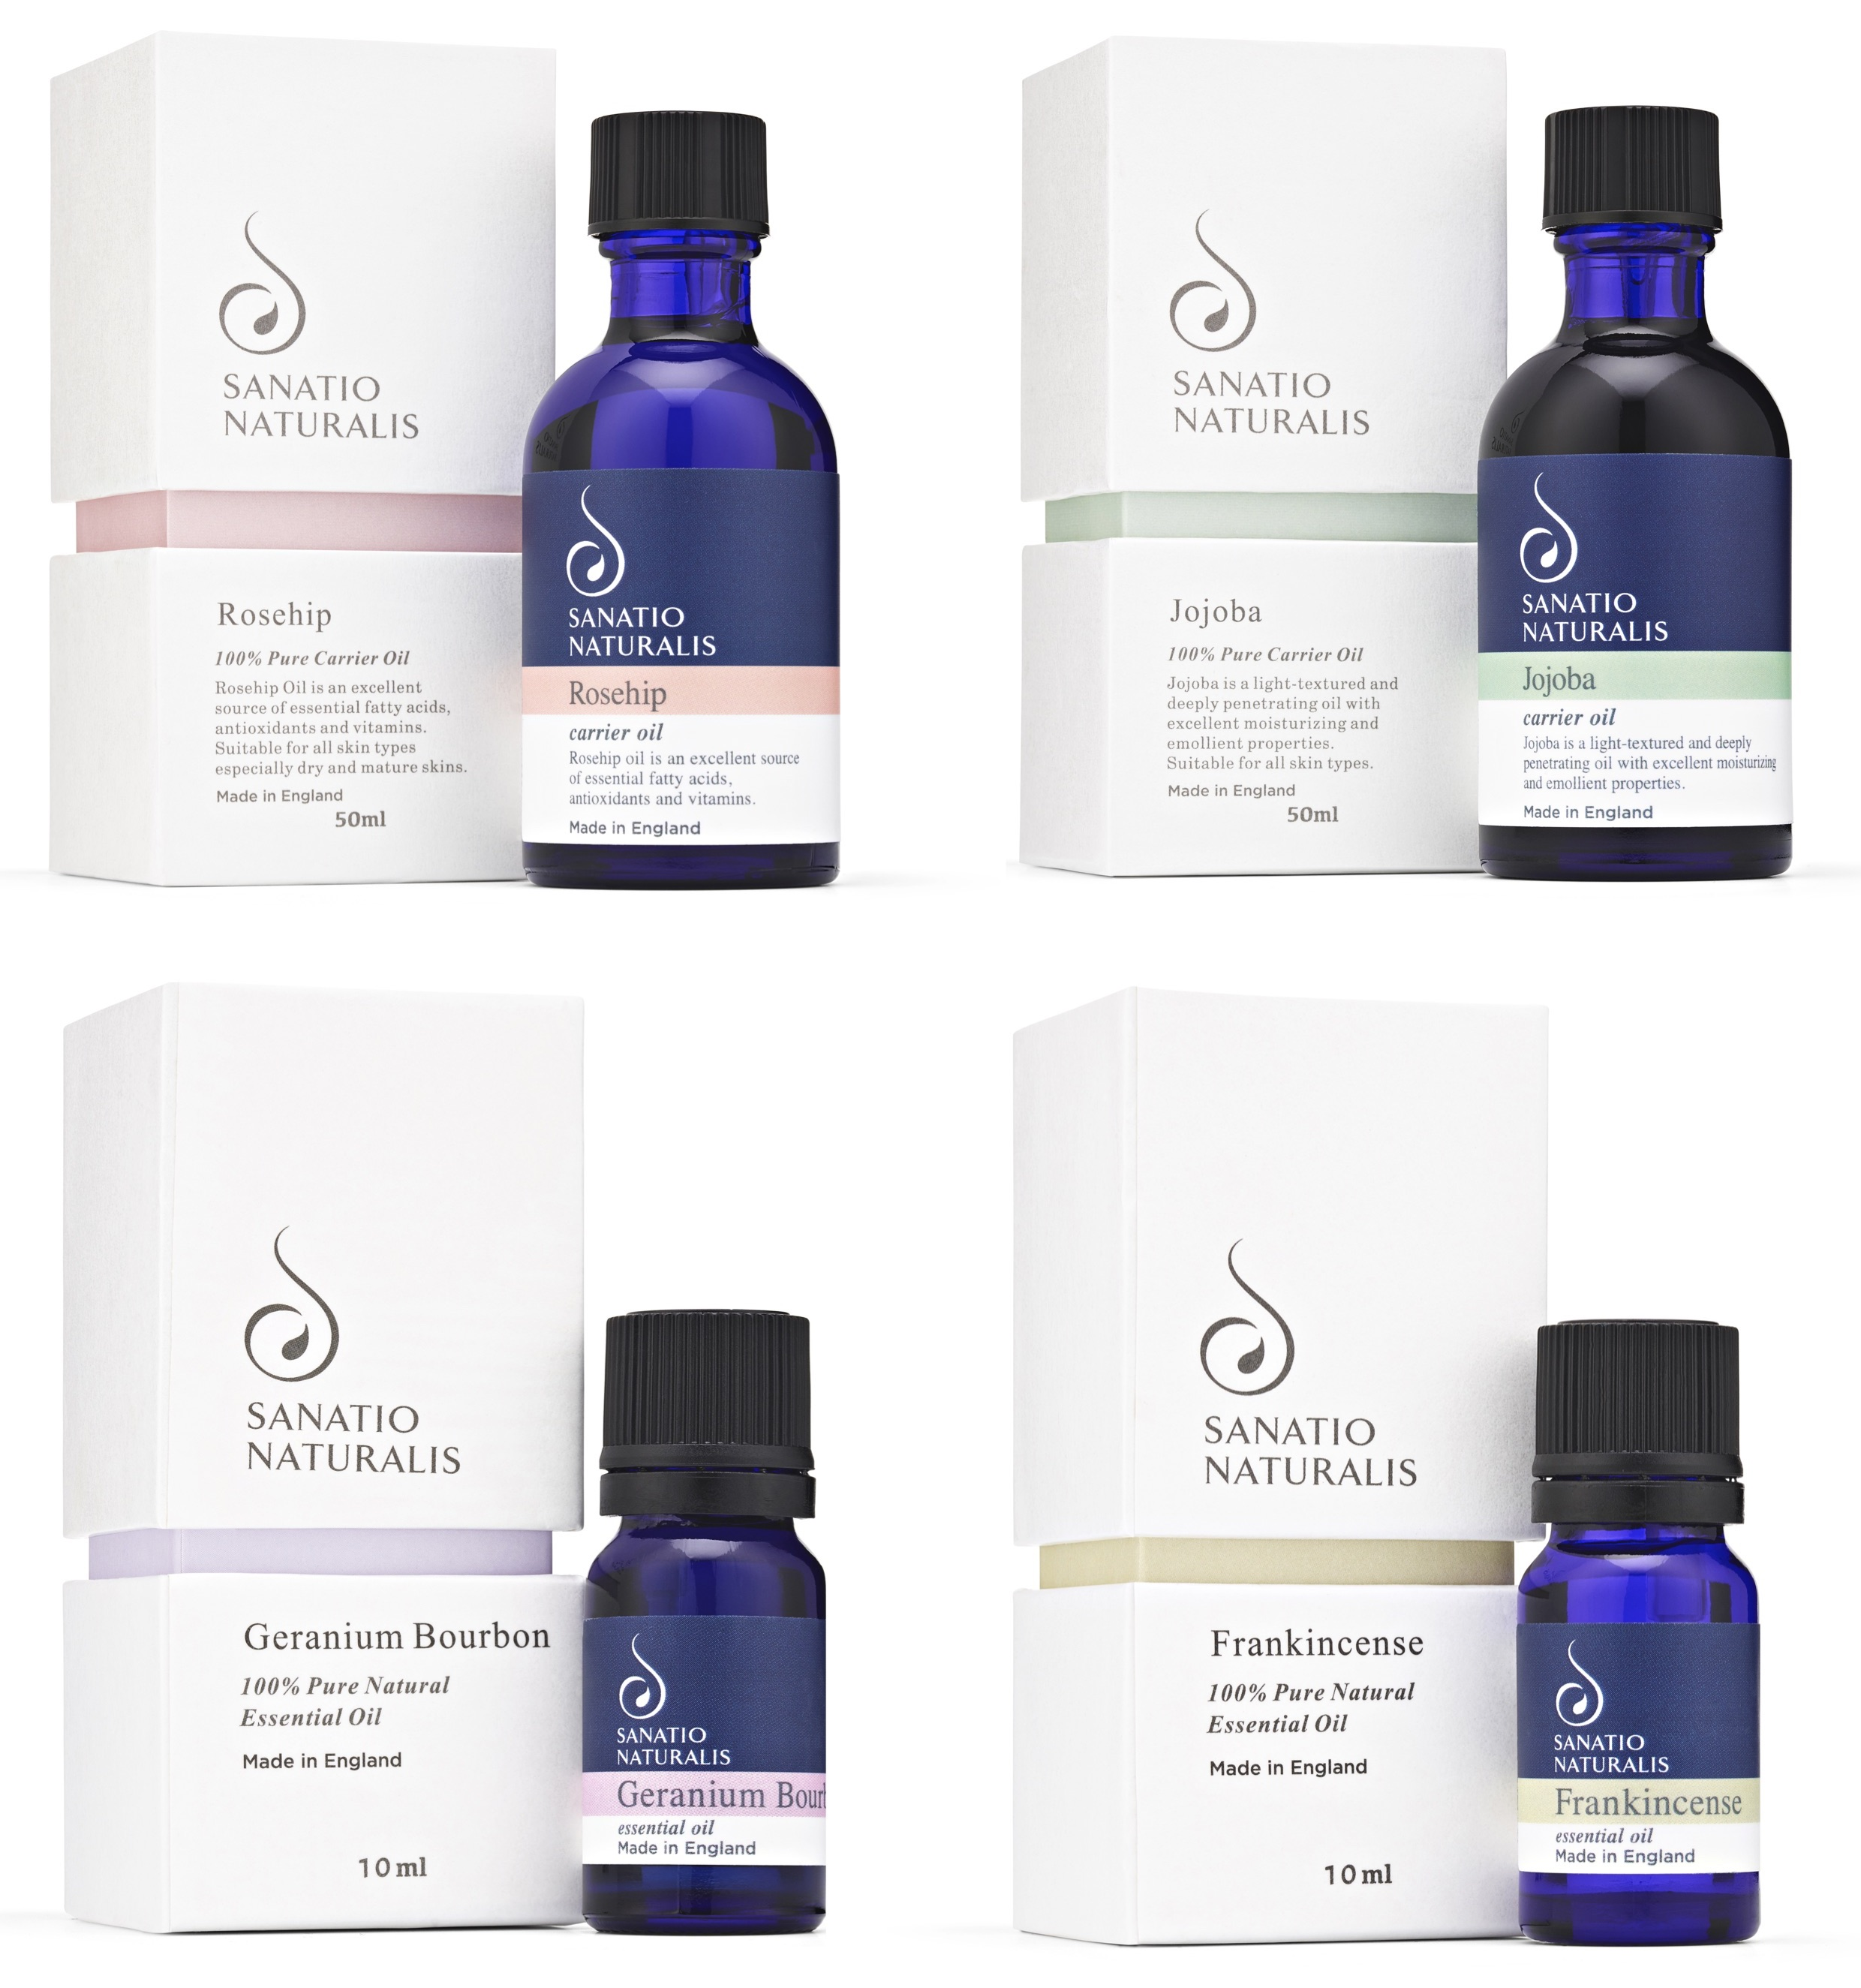 WIN! A selection of Sanatio Naturalis - worth £94!